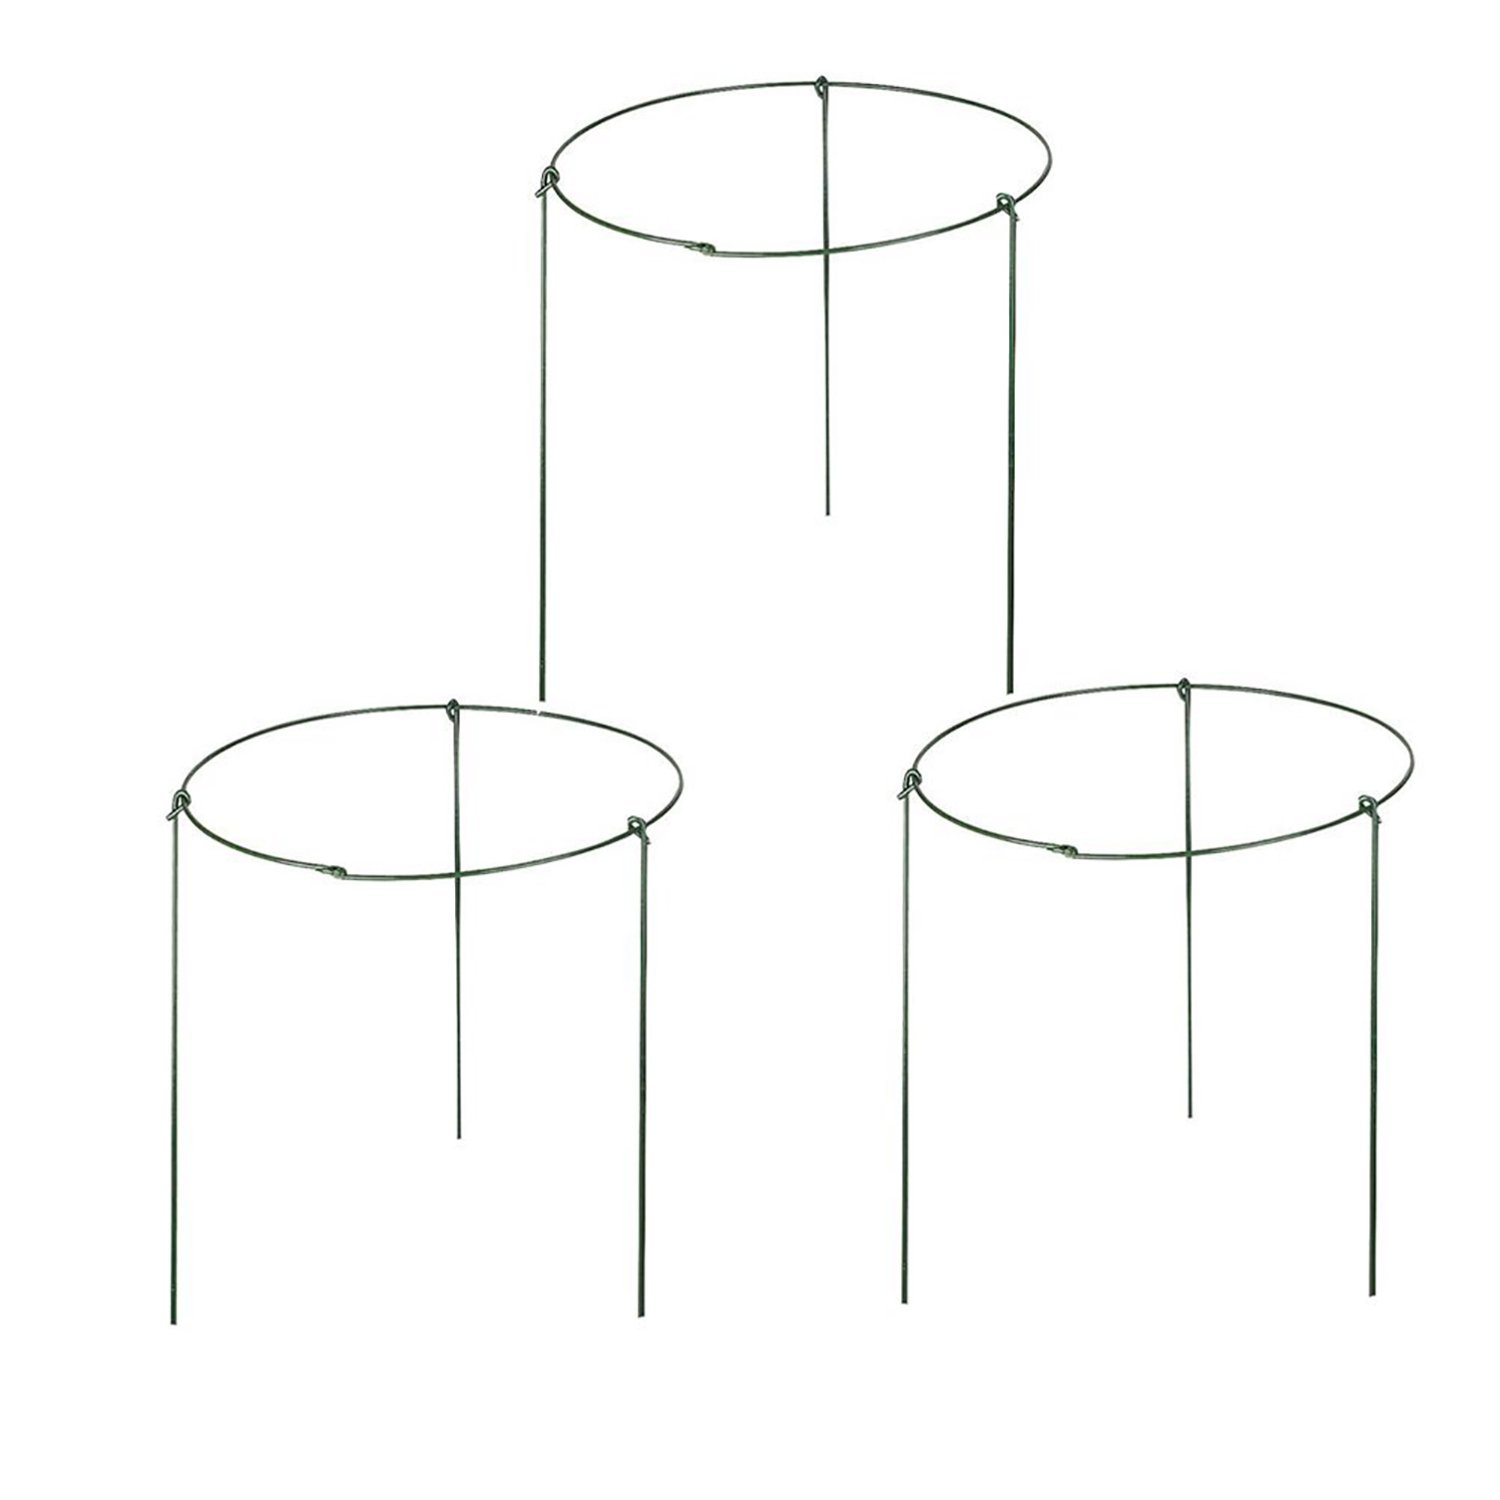 Rescozy Pack Of 3 Large Garden Plant Support Rings 10 Wide X 17 High 3 Legs Garden Outdoor